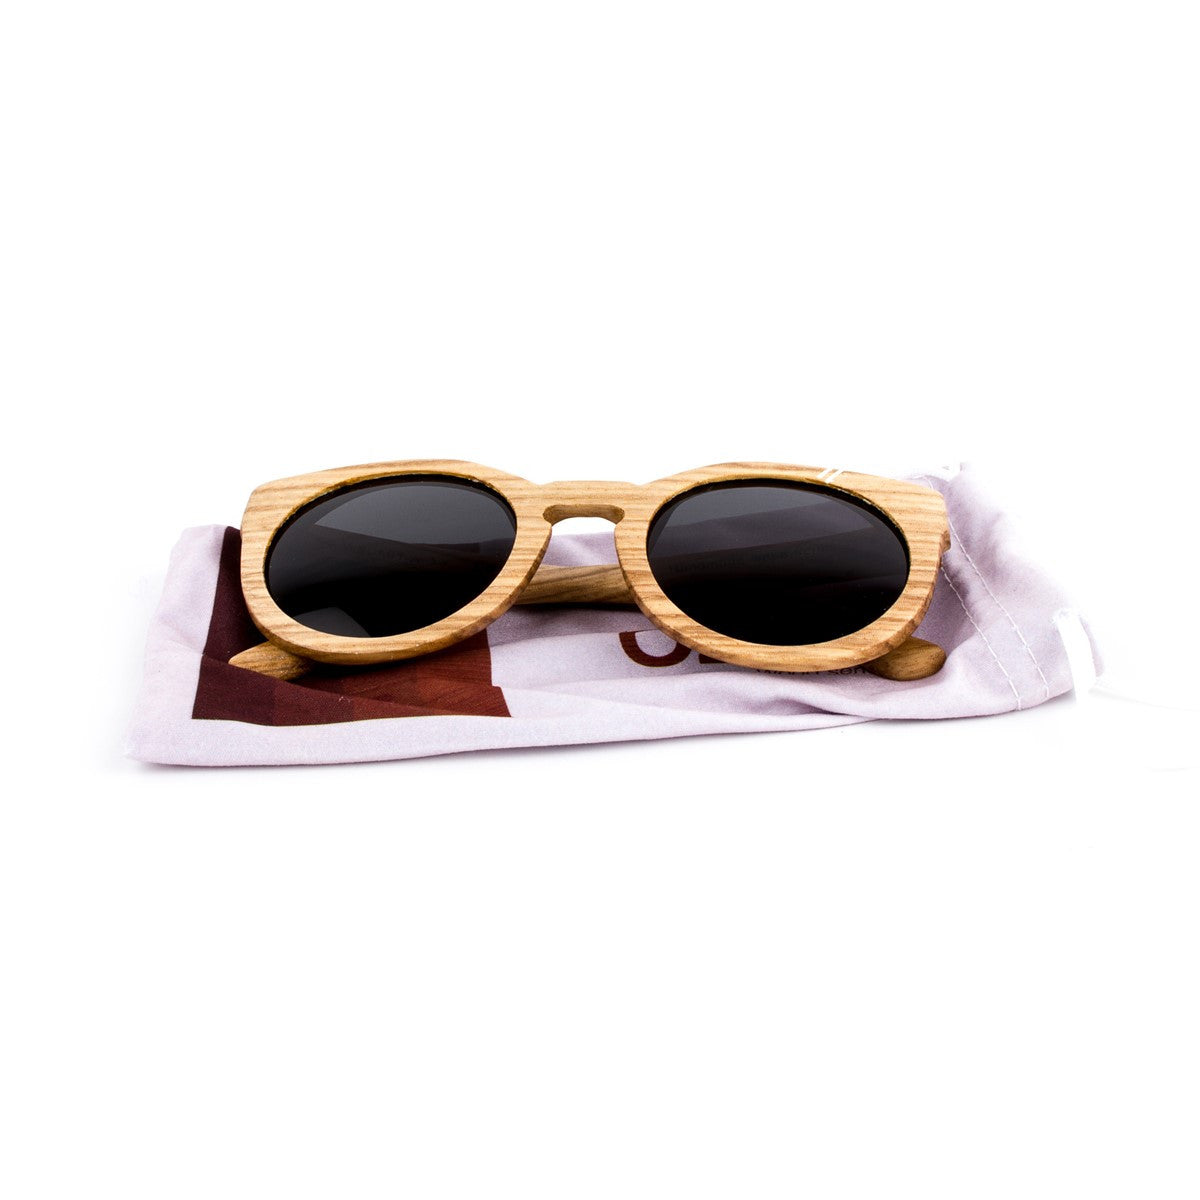 Wooden sunglasses Lady Zebra